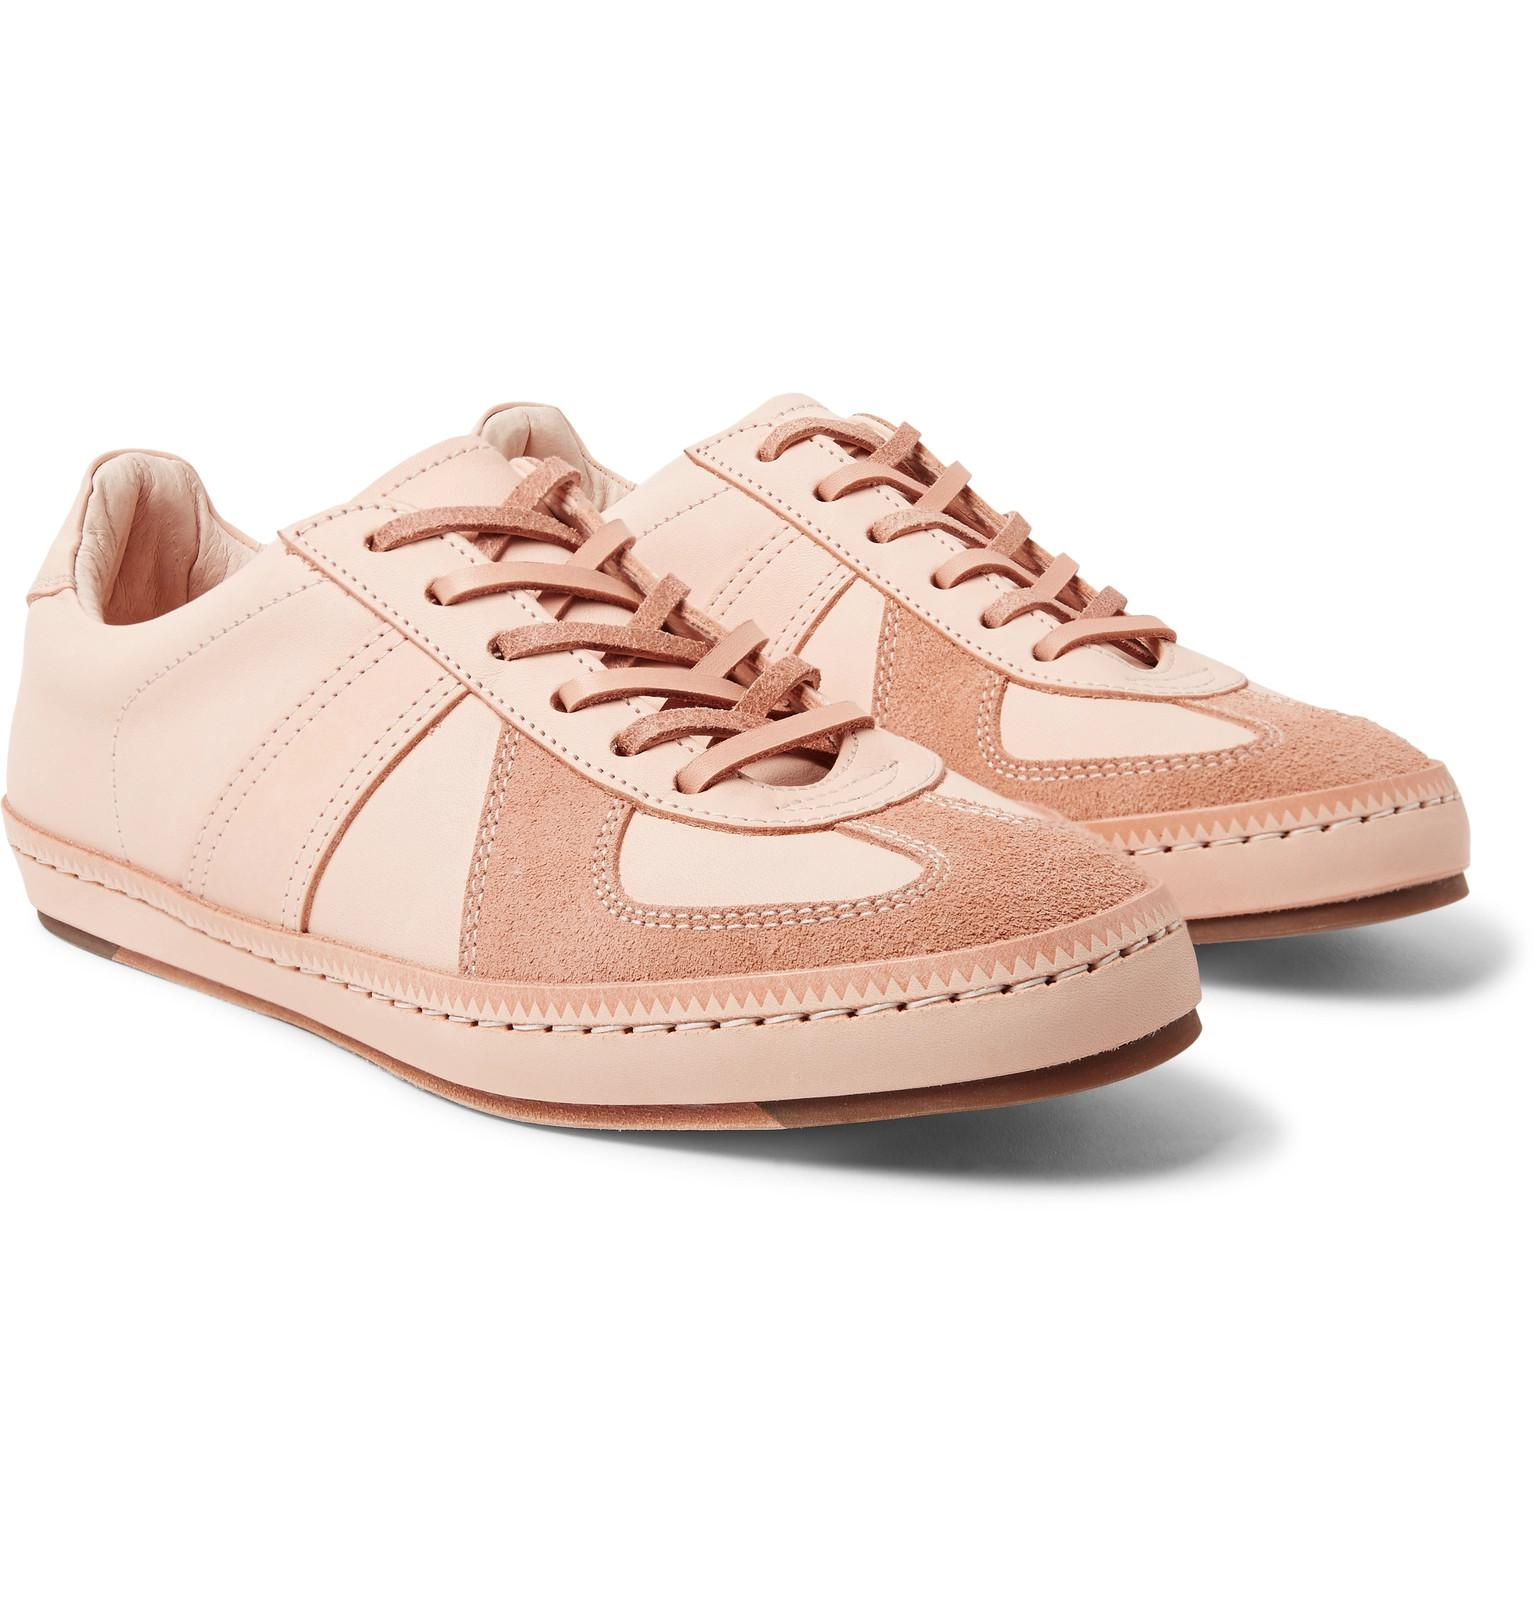 9f181487c Hender Scheme Mip-05 Suede-trimmed Leather Sneakers in Natural for ...